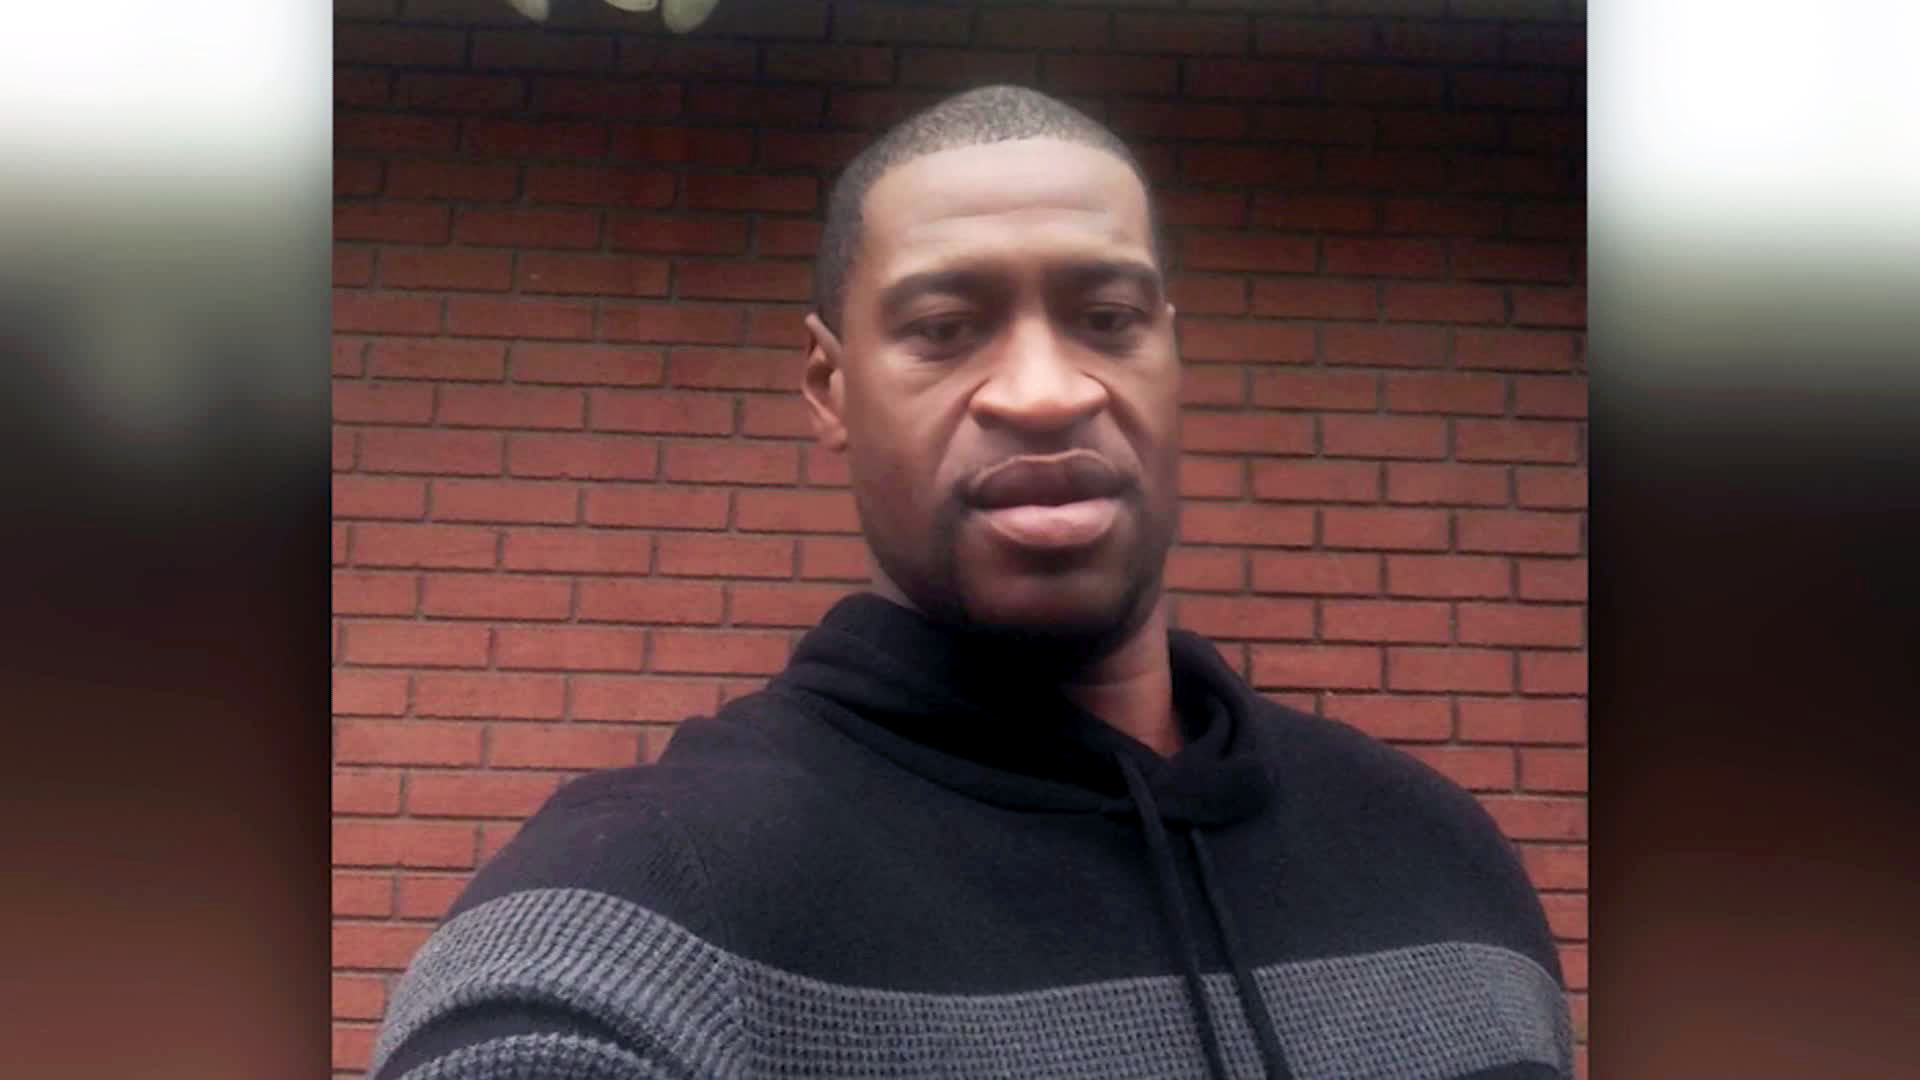 Two police body cameras capture the struggle leading to George Floyd's death